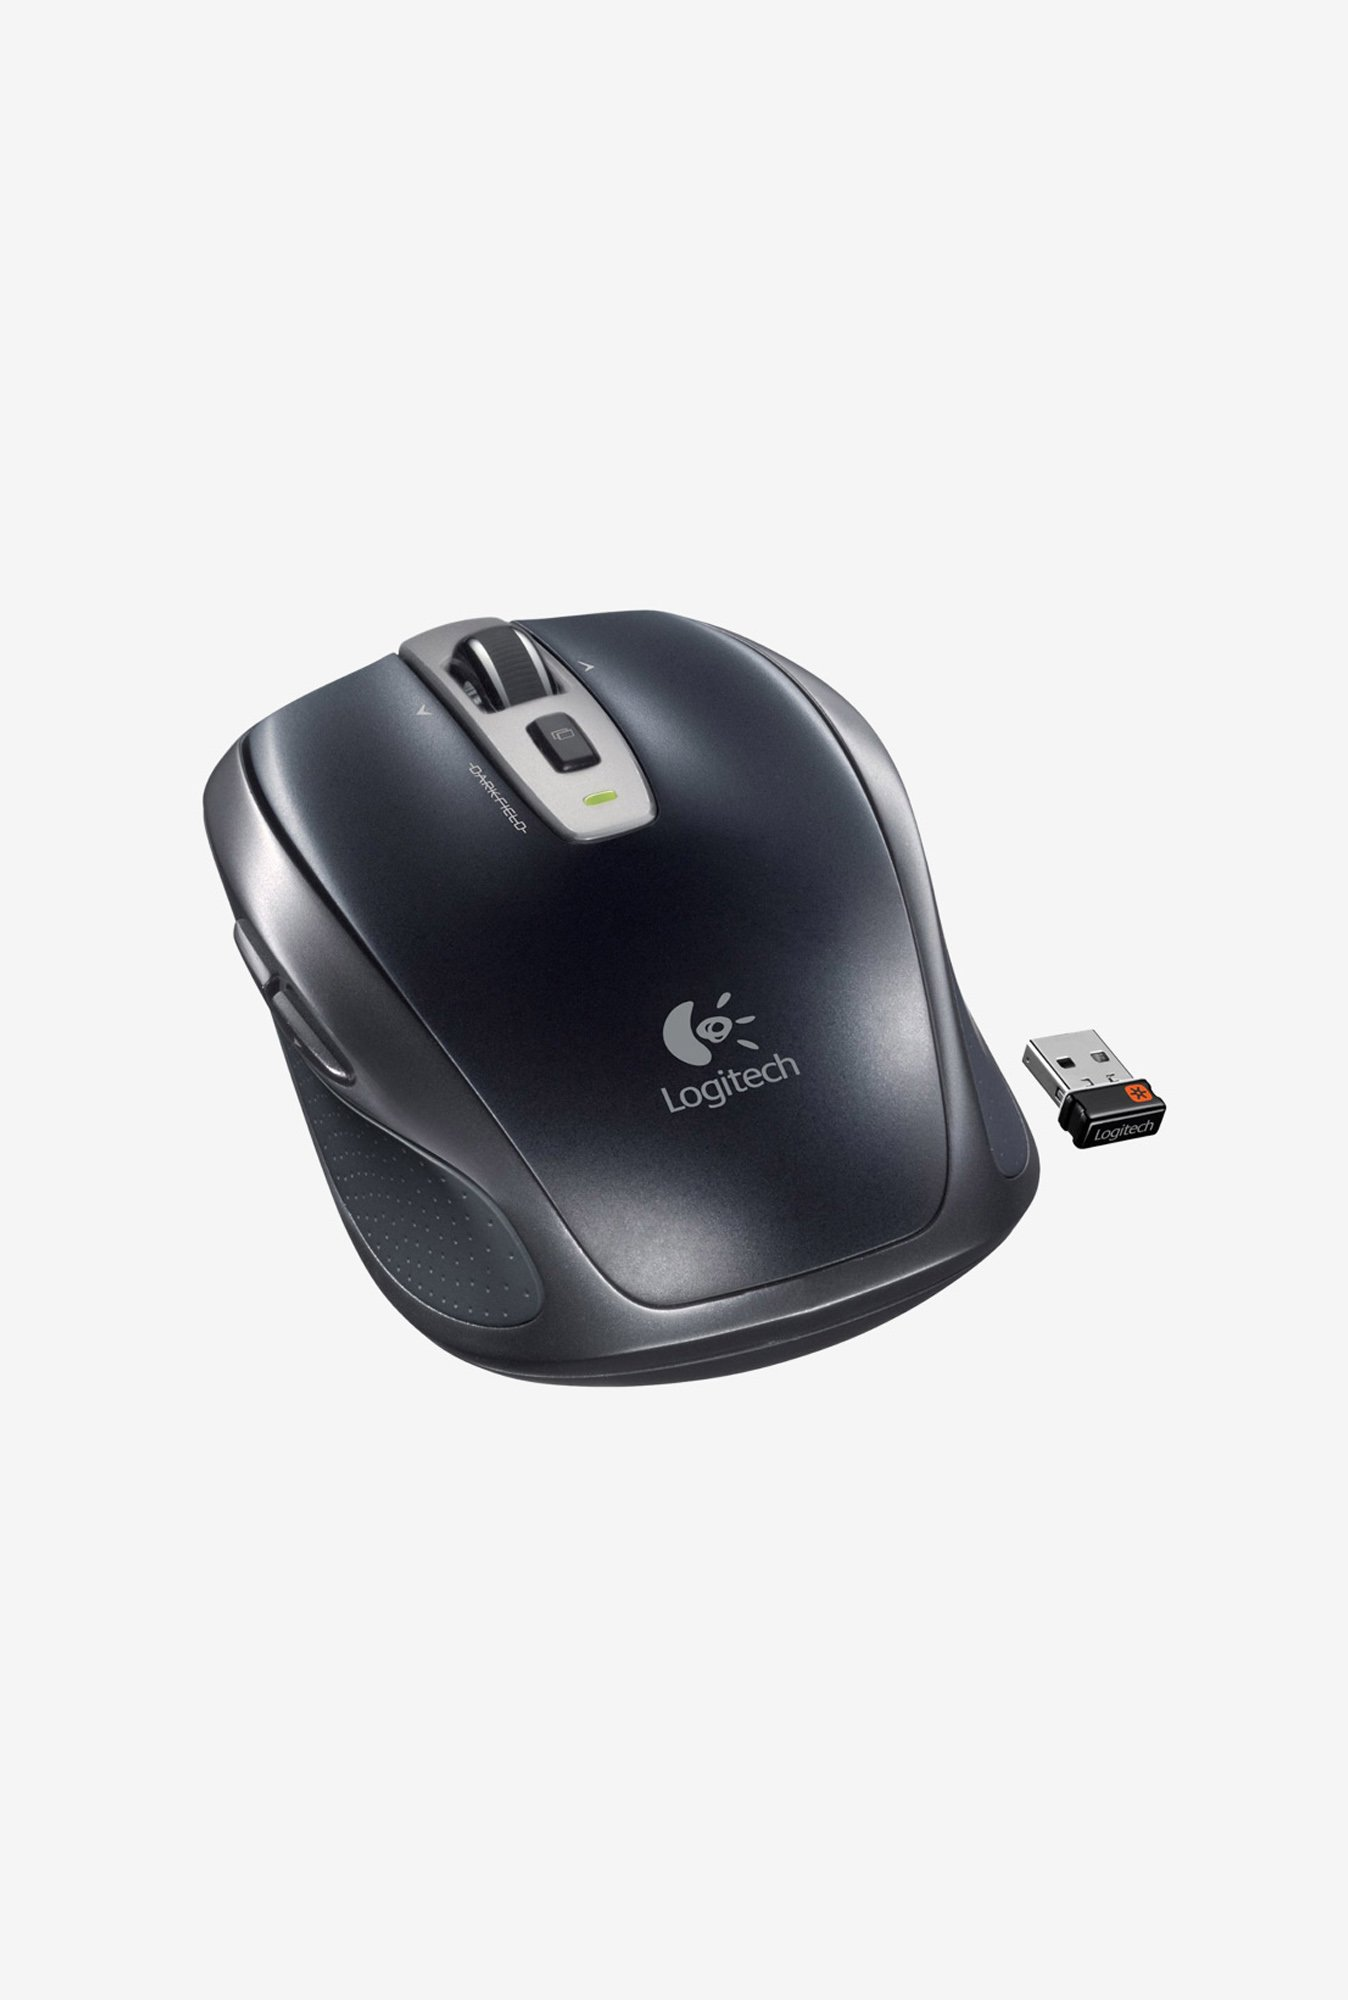 Logitech M905 Mouse Black